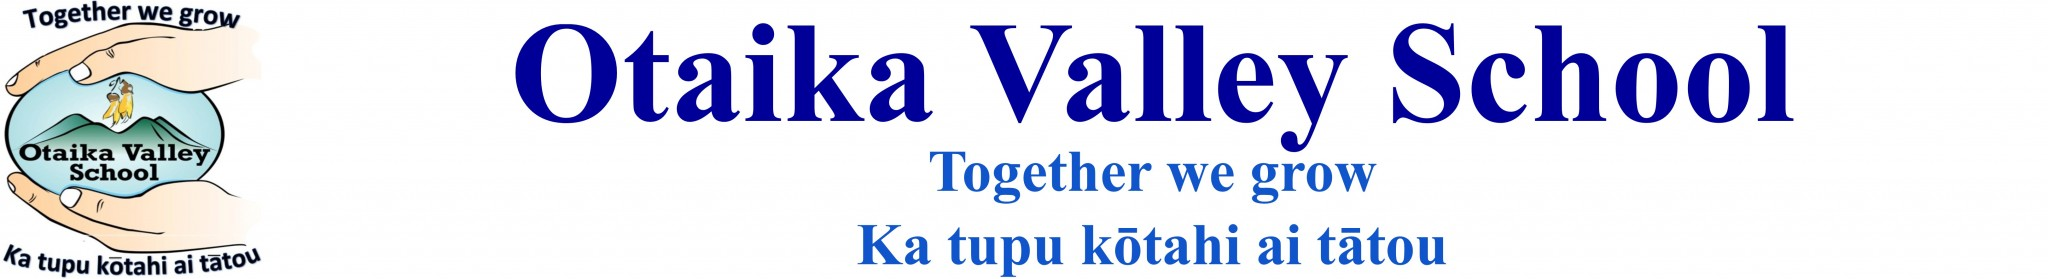 Otaika Valley School Logo